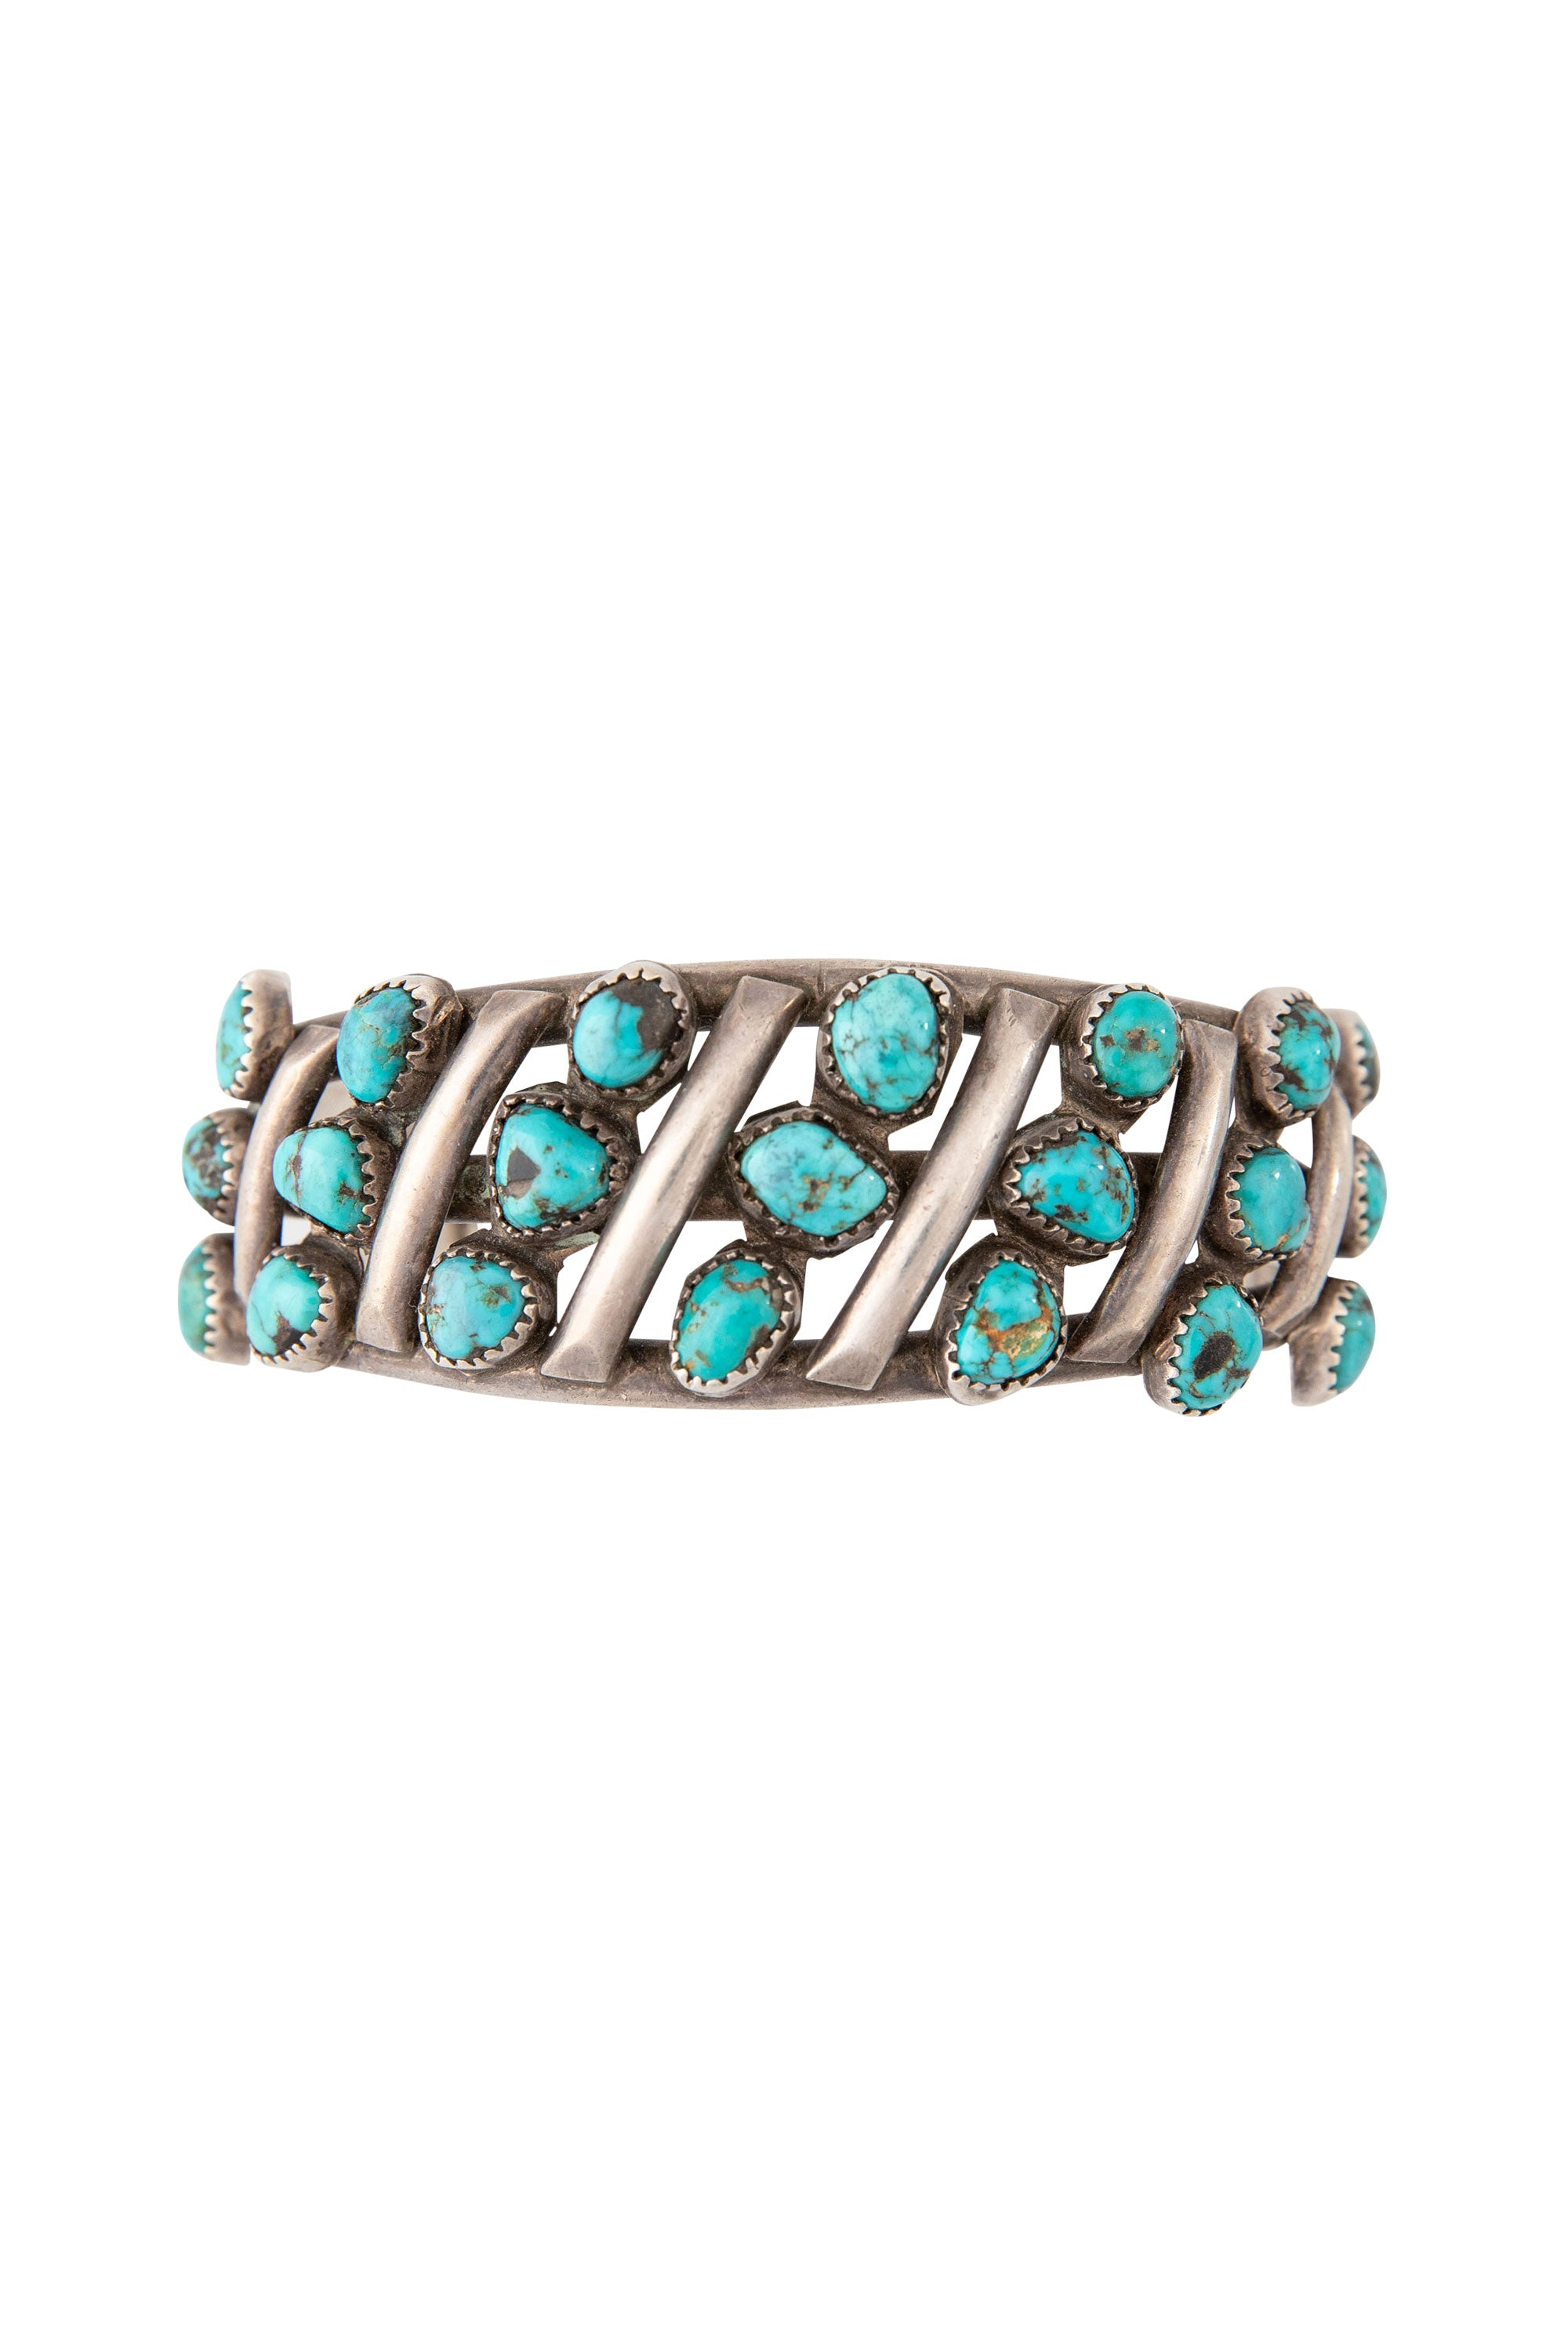 Cuff, Turquoise, 21 Stone, Old Pawn, 2368